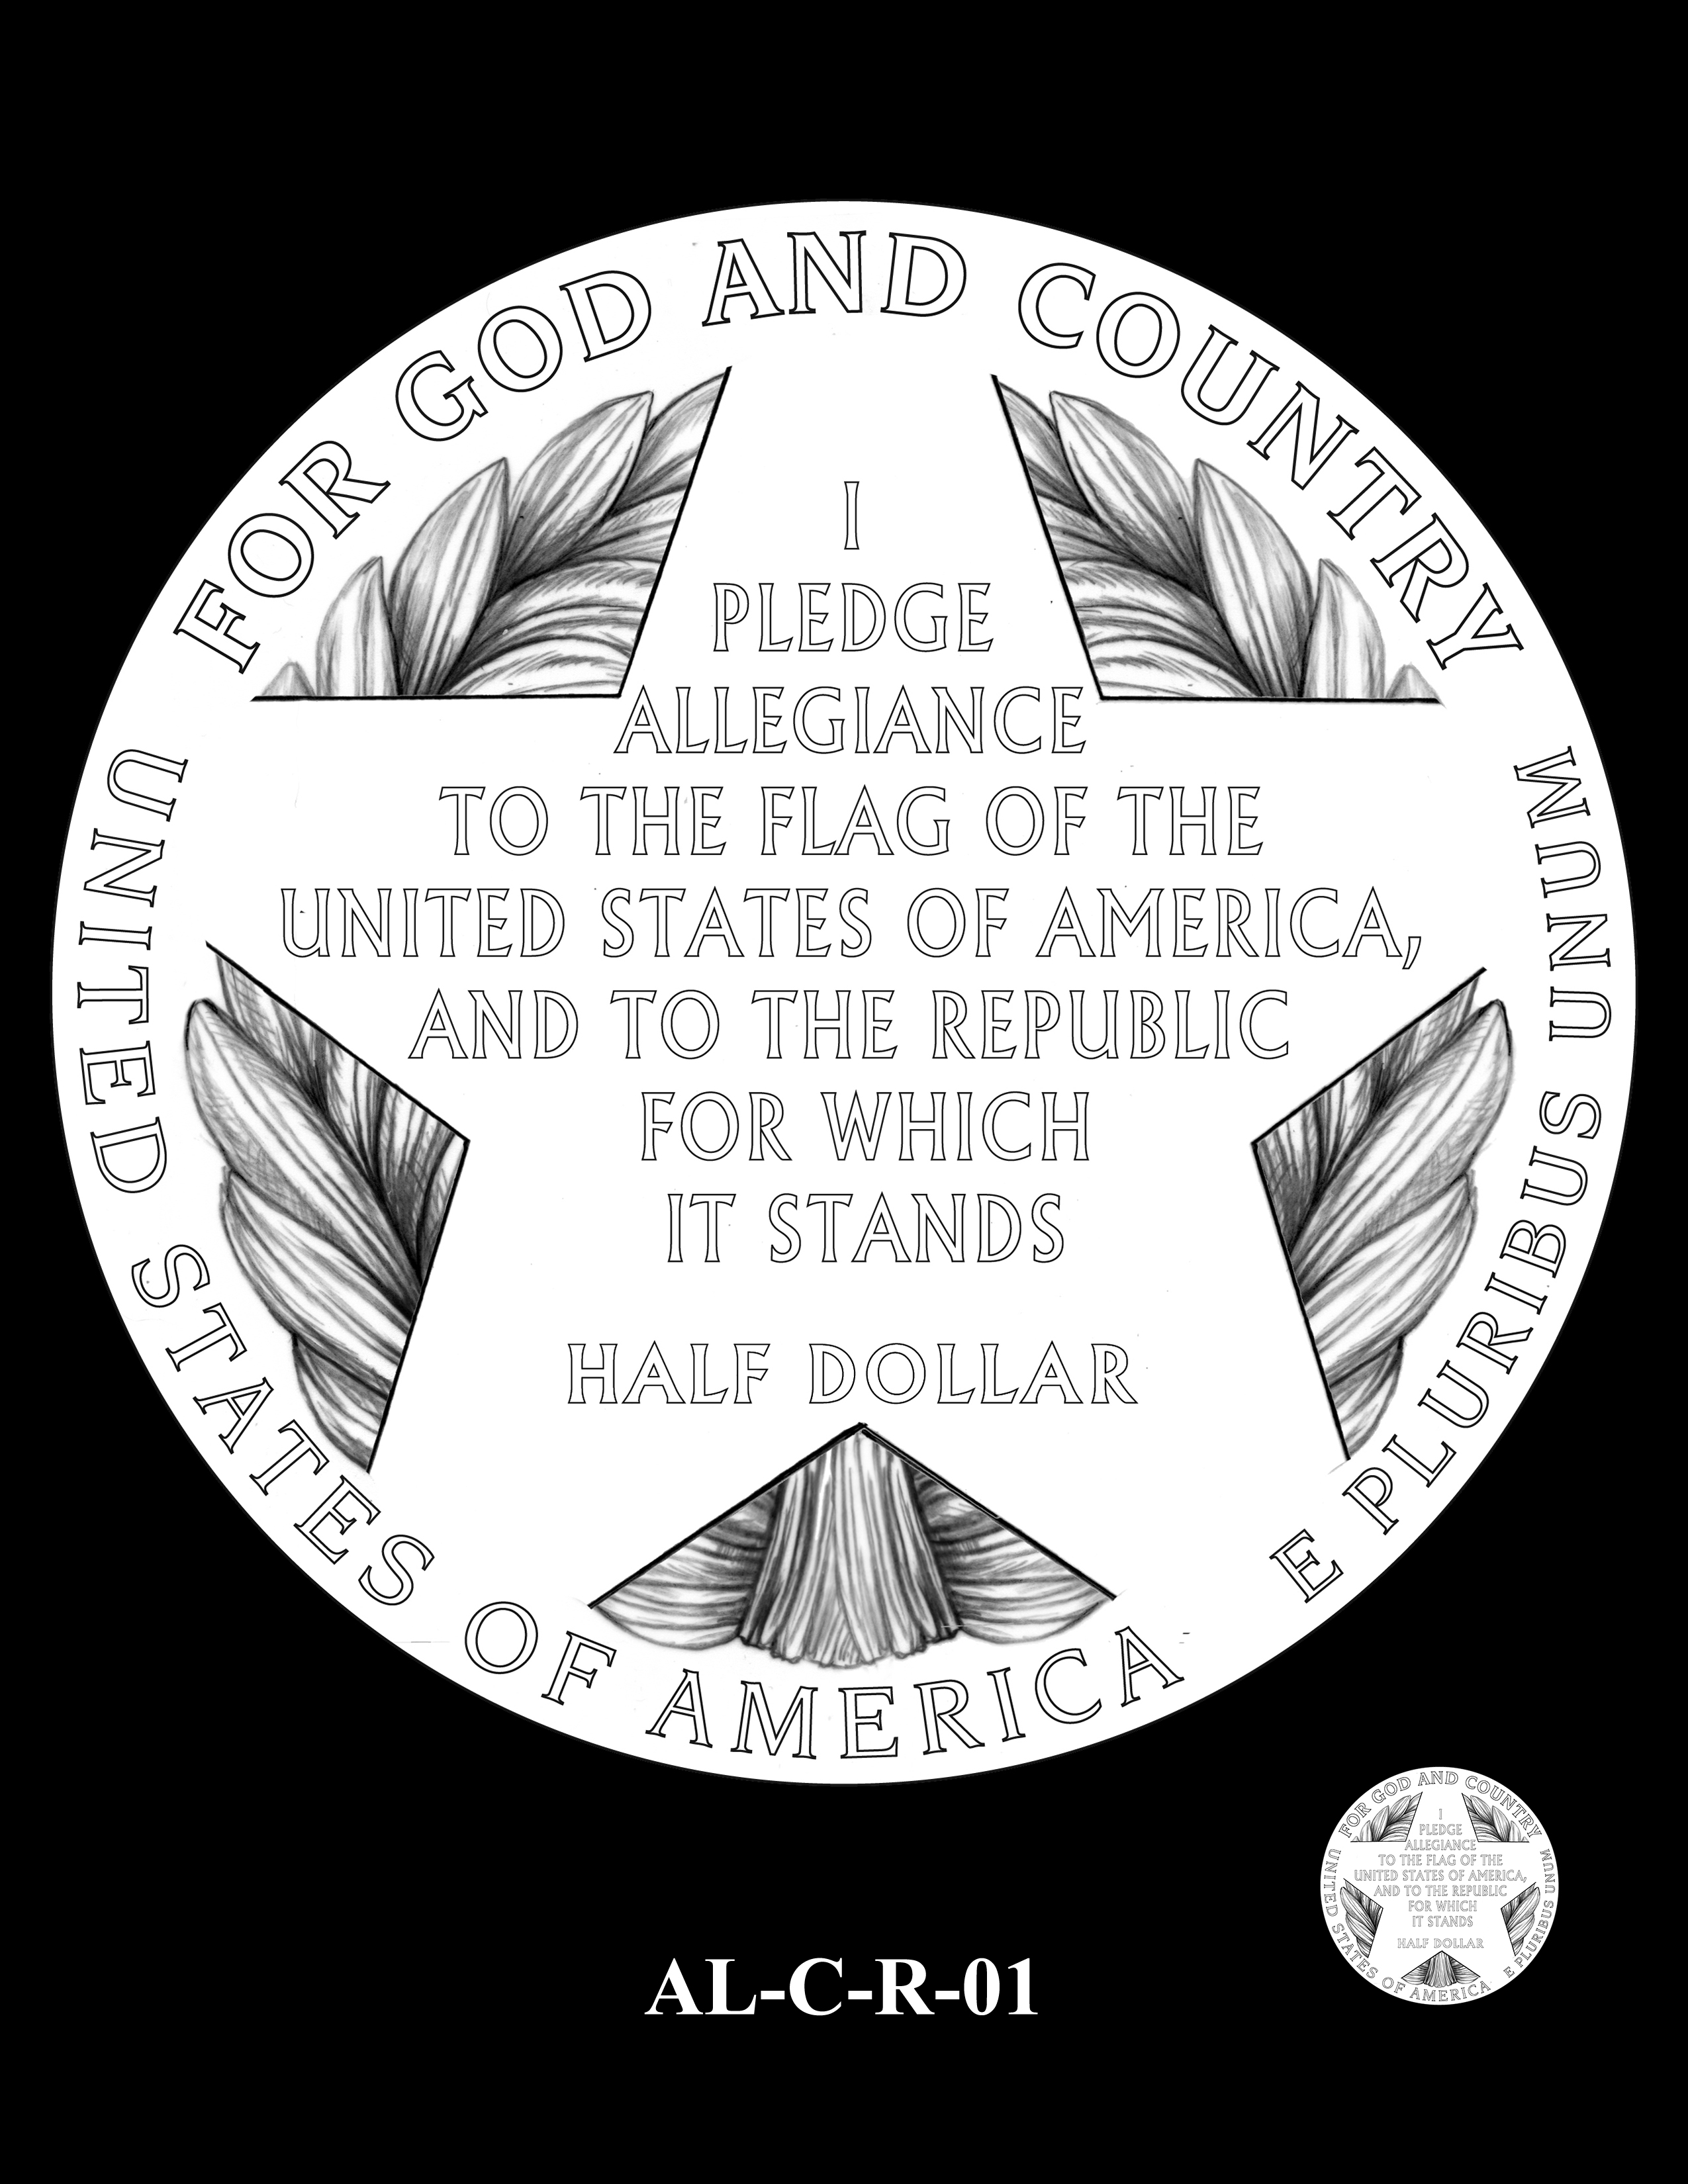 AL-C-R-01 -- 2019 American Legion 100th Anniversary Commemorative Coin Program - Clad Reverse